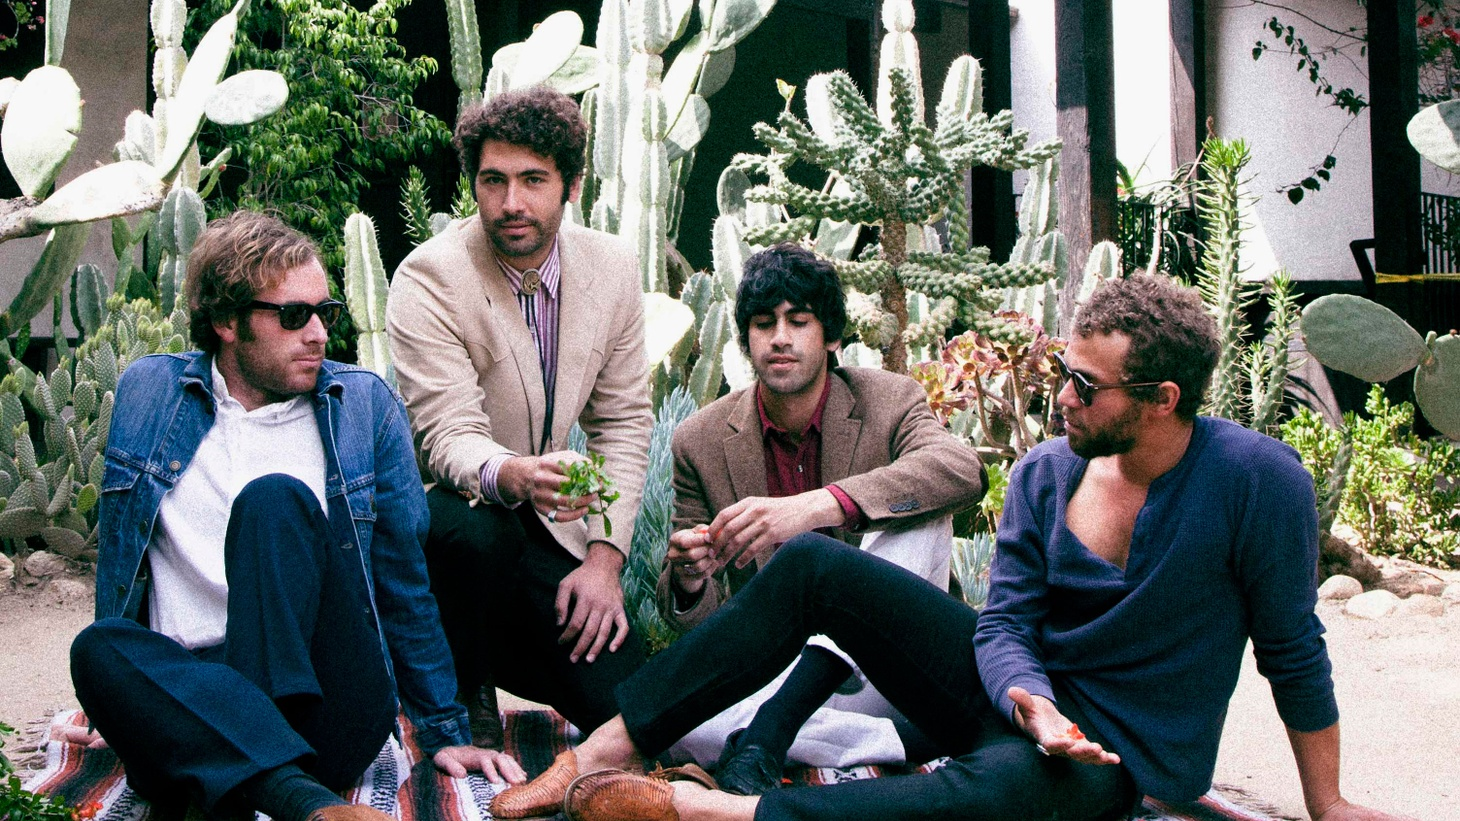 As the members of Allah-Las were preparing their next album, they decided to put together a collection that explored old and new songs they enjoyed: songs like George Harrison's Fish on the Sand, Television's Hard On Love and Kathy Heideman's The Earth Won't Hold Me.